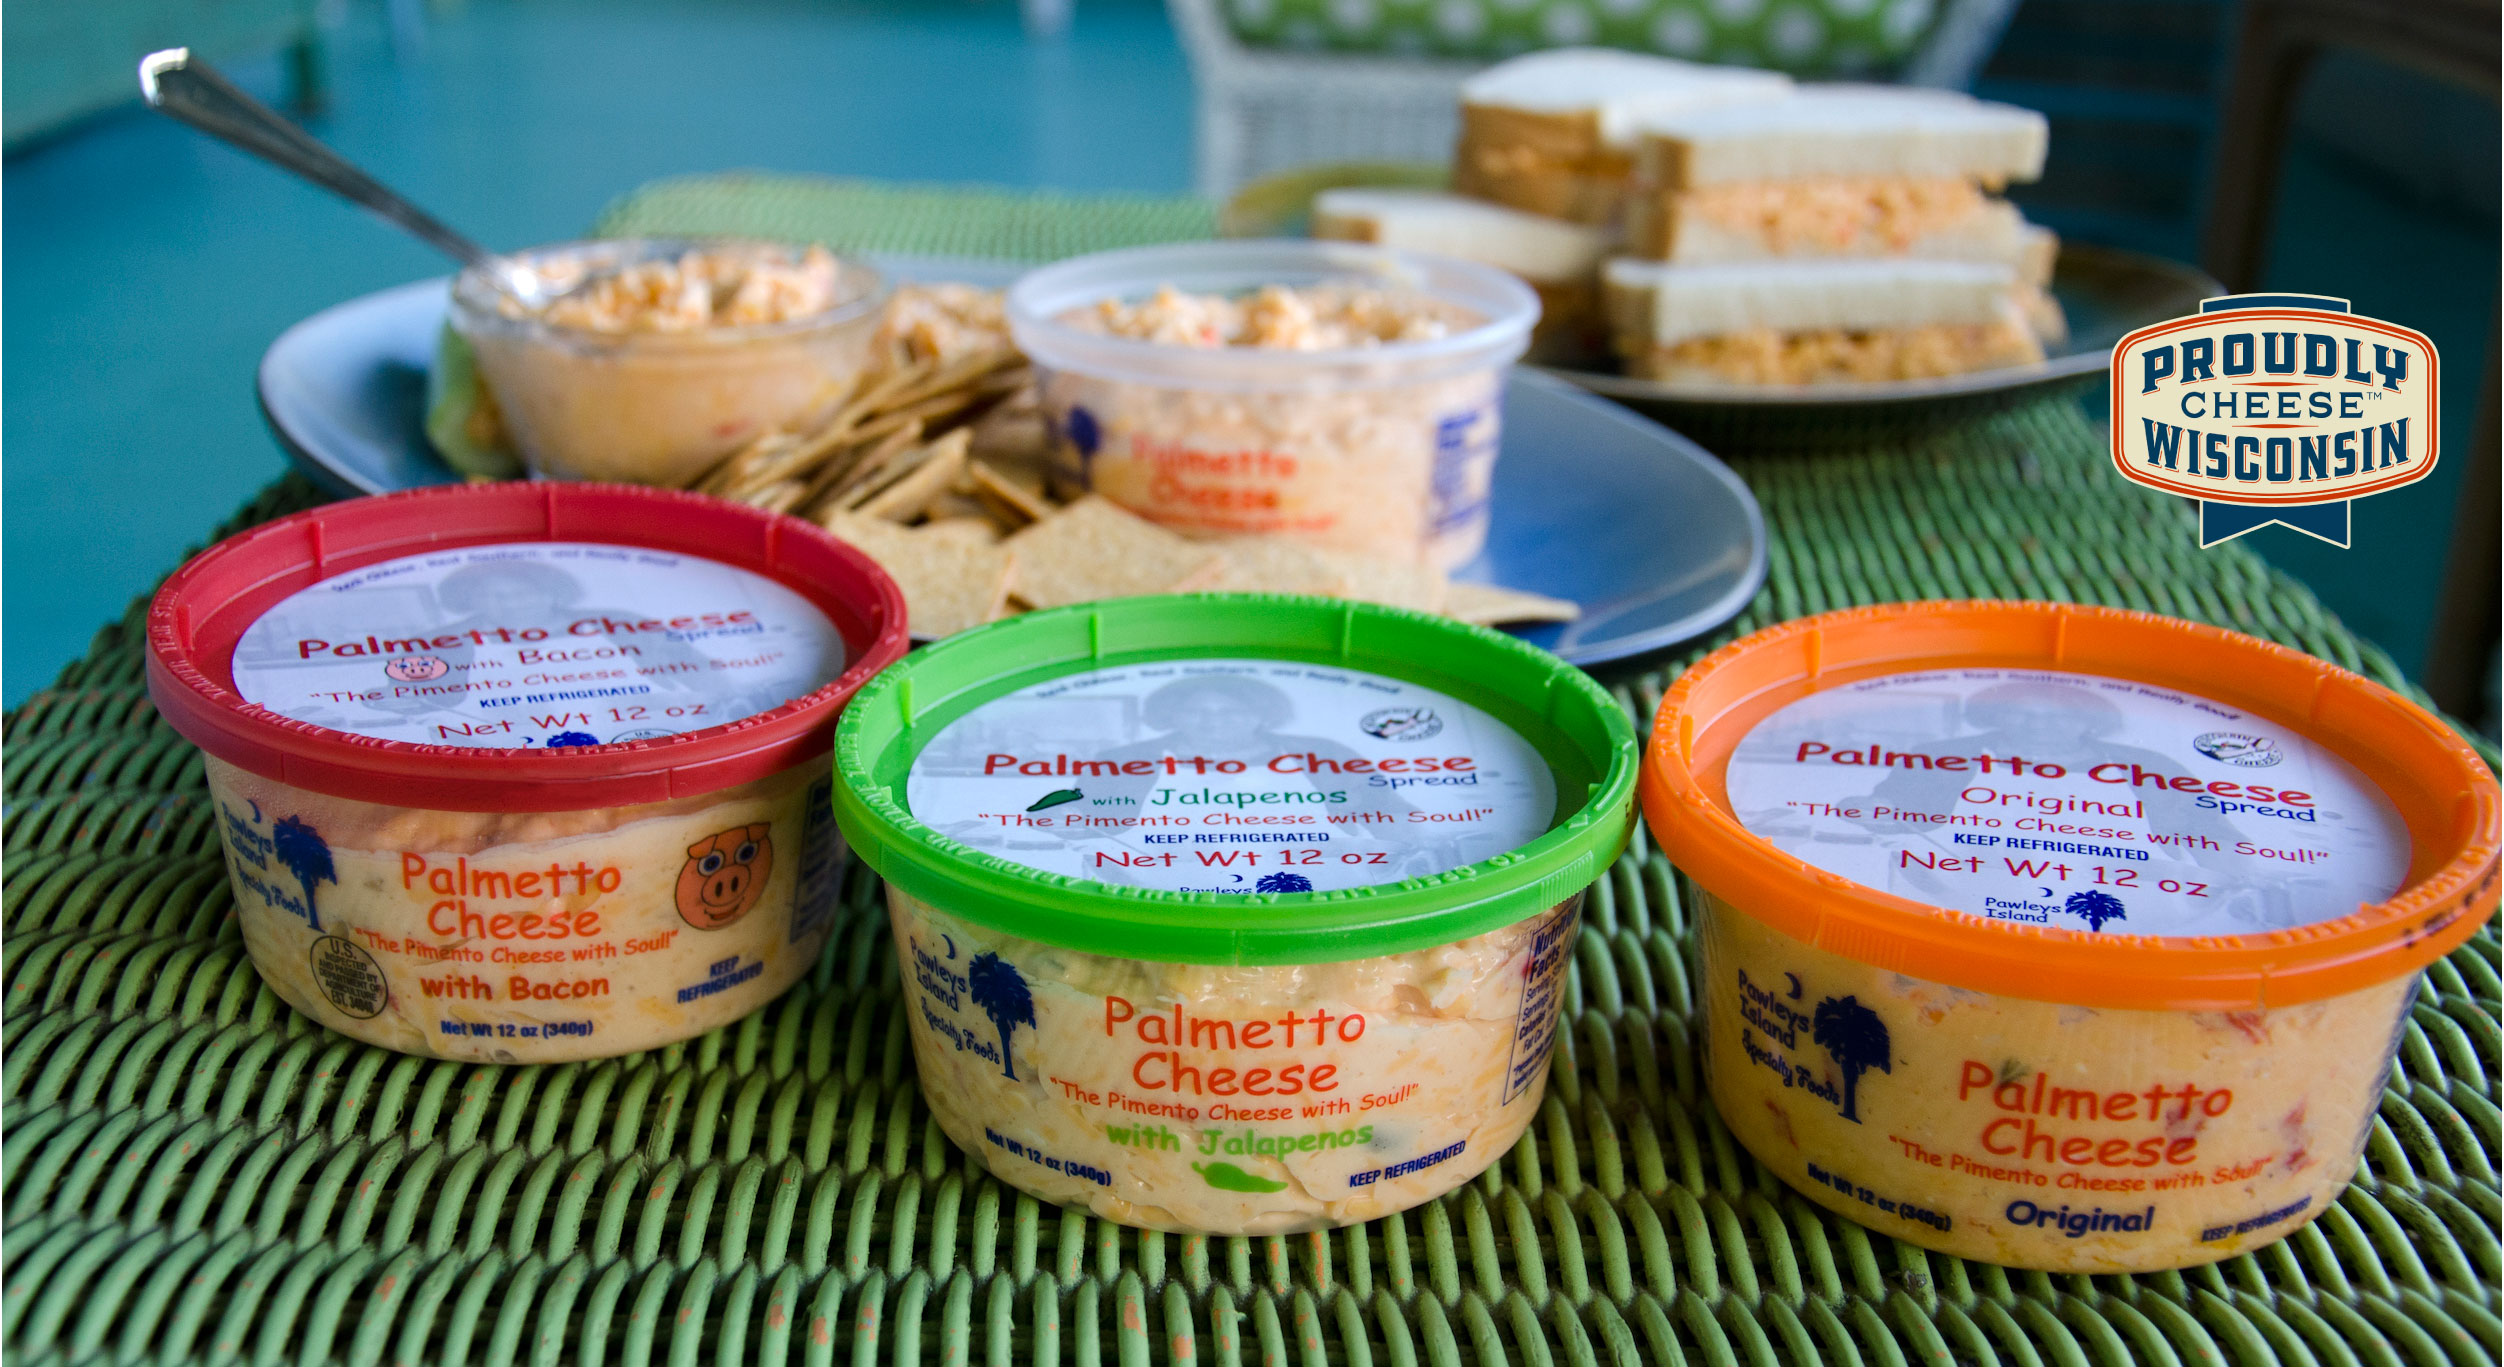 pimento cheese palmetto cheese wisconsin dairy